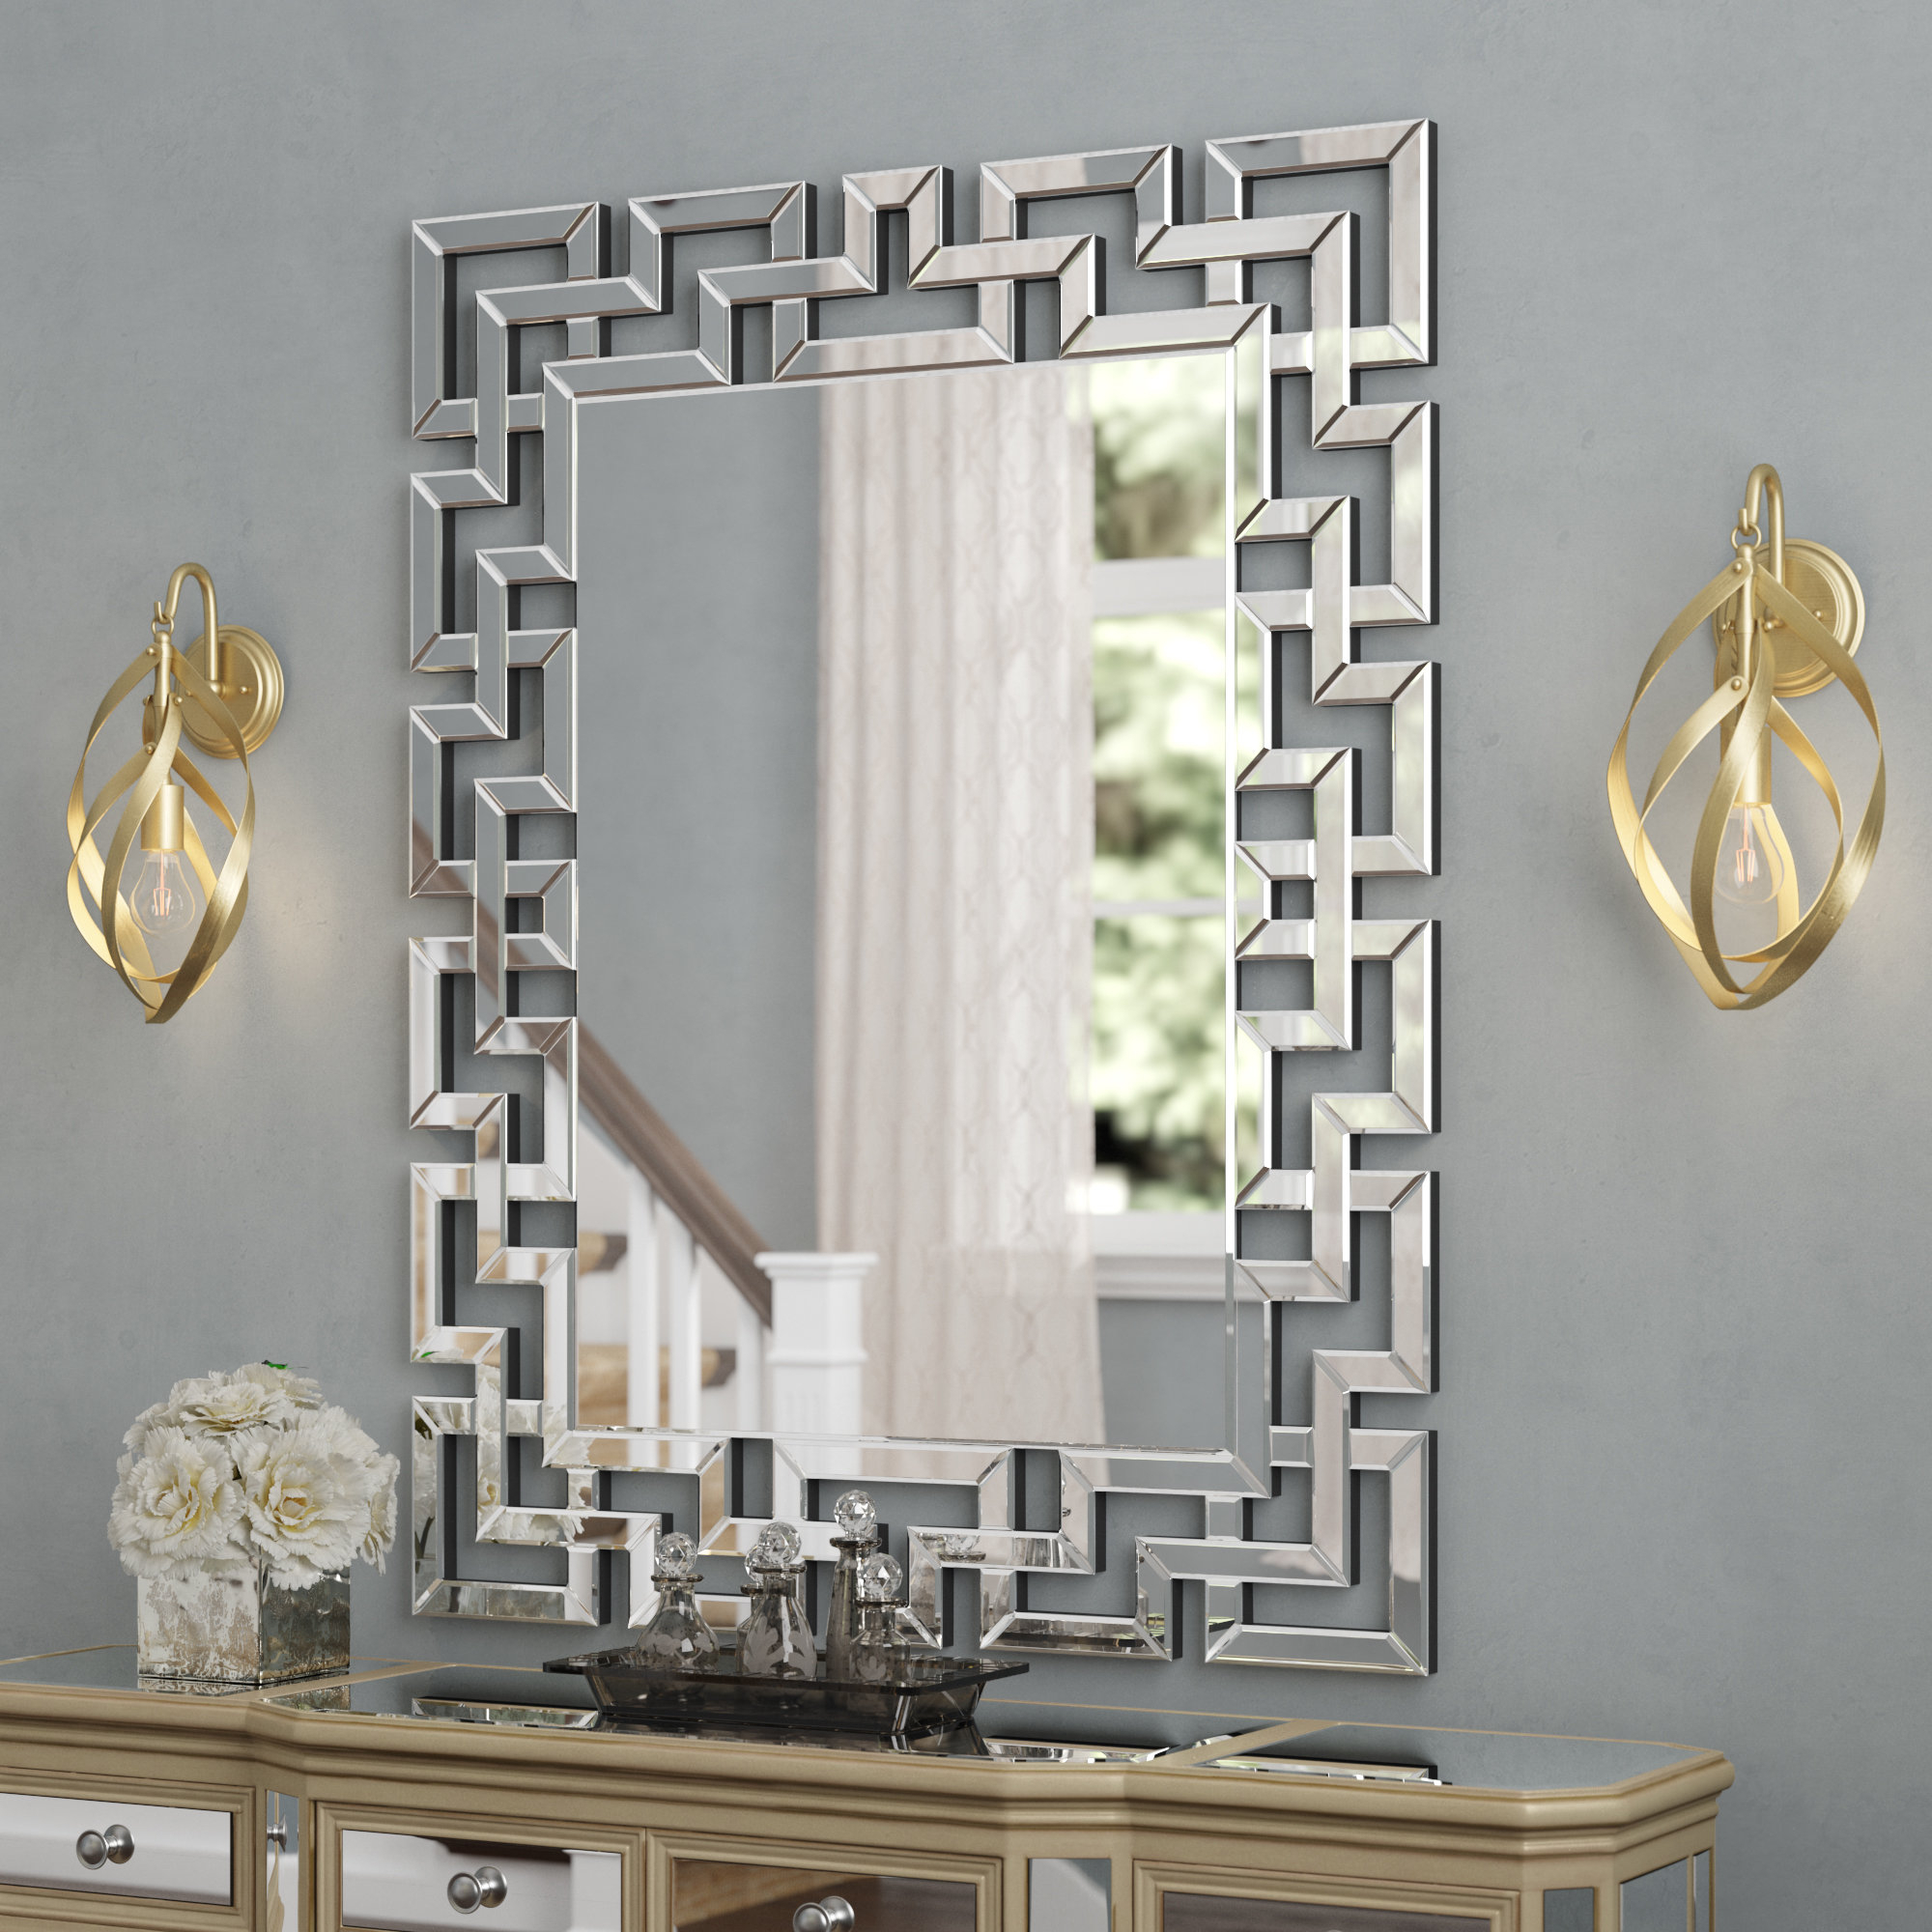 Frames For Wall Mirrors Pertaining To 2020 Cabinet Lowes Mirror Sink Home Wall Vanity Ideas Extending Argos (View 11 of 20)